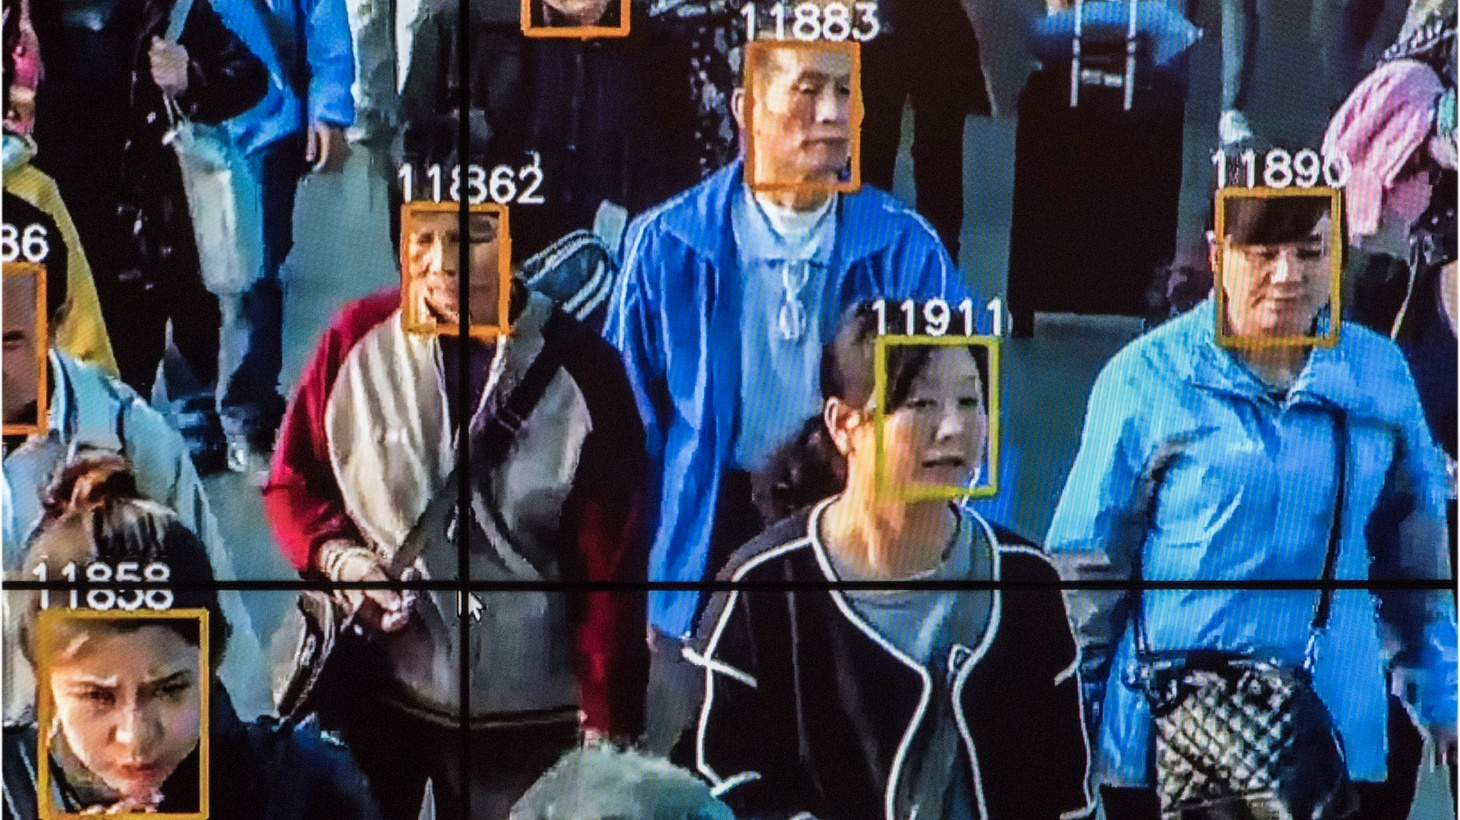 """China is creating a system to monitor every citizen. Using security camera footage, facial recognition technology, and internet usage, authorities are creating """"social credit scores"""" to determine whether someone is a good citizen."""